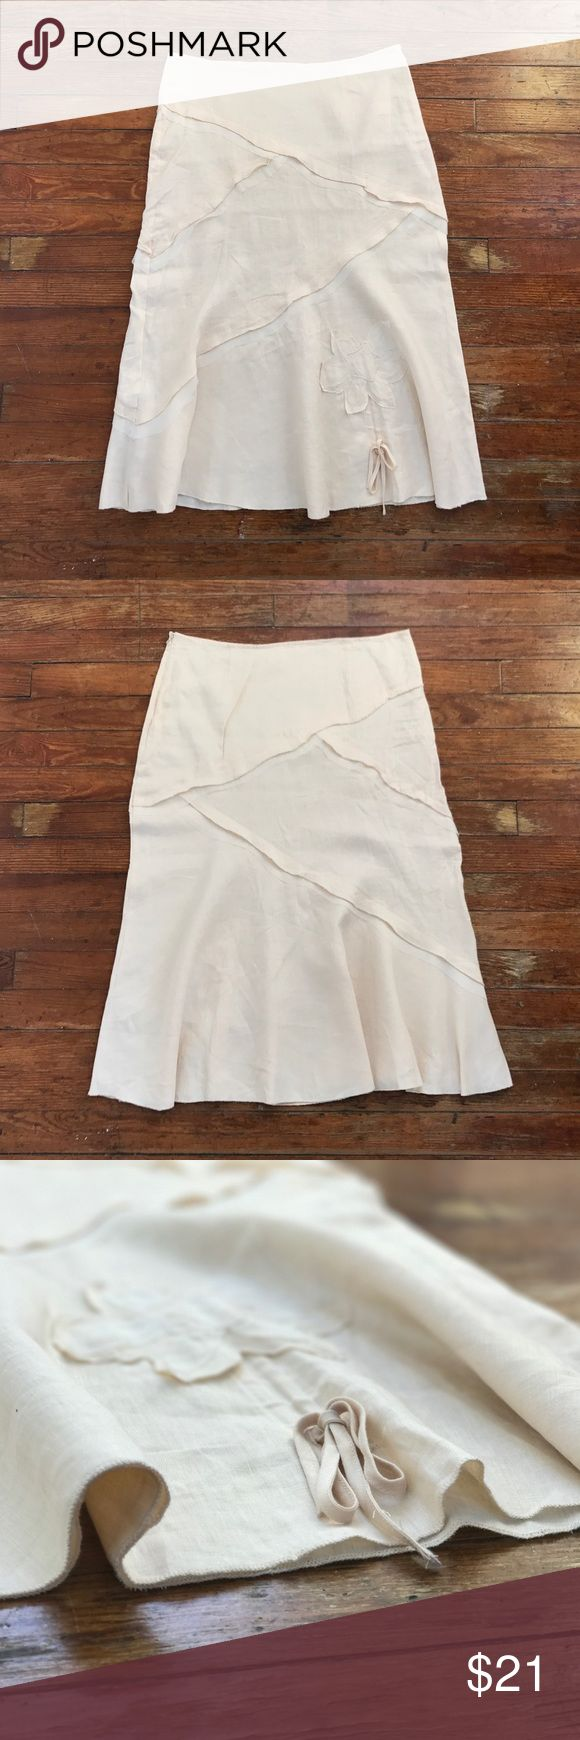 Dainty 💯% Linen Ivory Skirt w/ Detail Stitching New Without Tags & Never Worn  Beautiful detail stitching & flatters any woman's curves  Color of skirt is similar to vintage pearls  Stored in protective garment bag in my closet & can be shipped within 24 hrs of purchase  Invisible side zipper in good working condition  Hook & Eye Closure in good working condition   No visible flaws  100% Smoke-Free & Pet-Free Homes  There is no size / material tag on  Measurements: see comments below Skirts